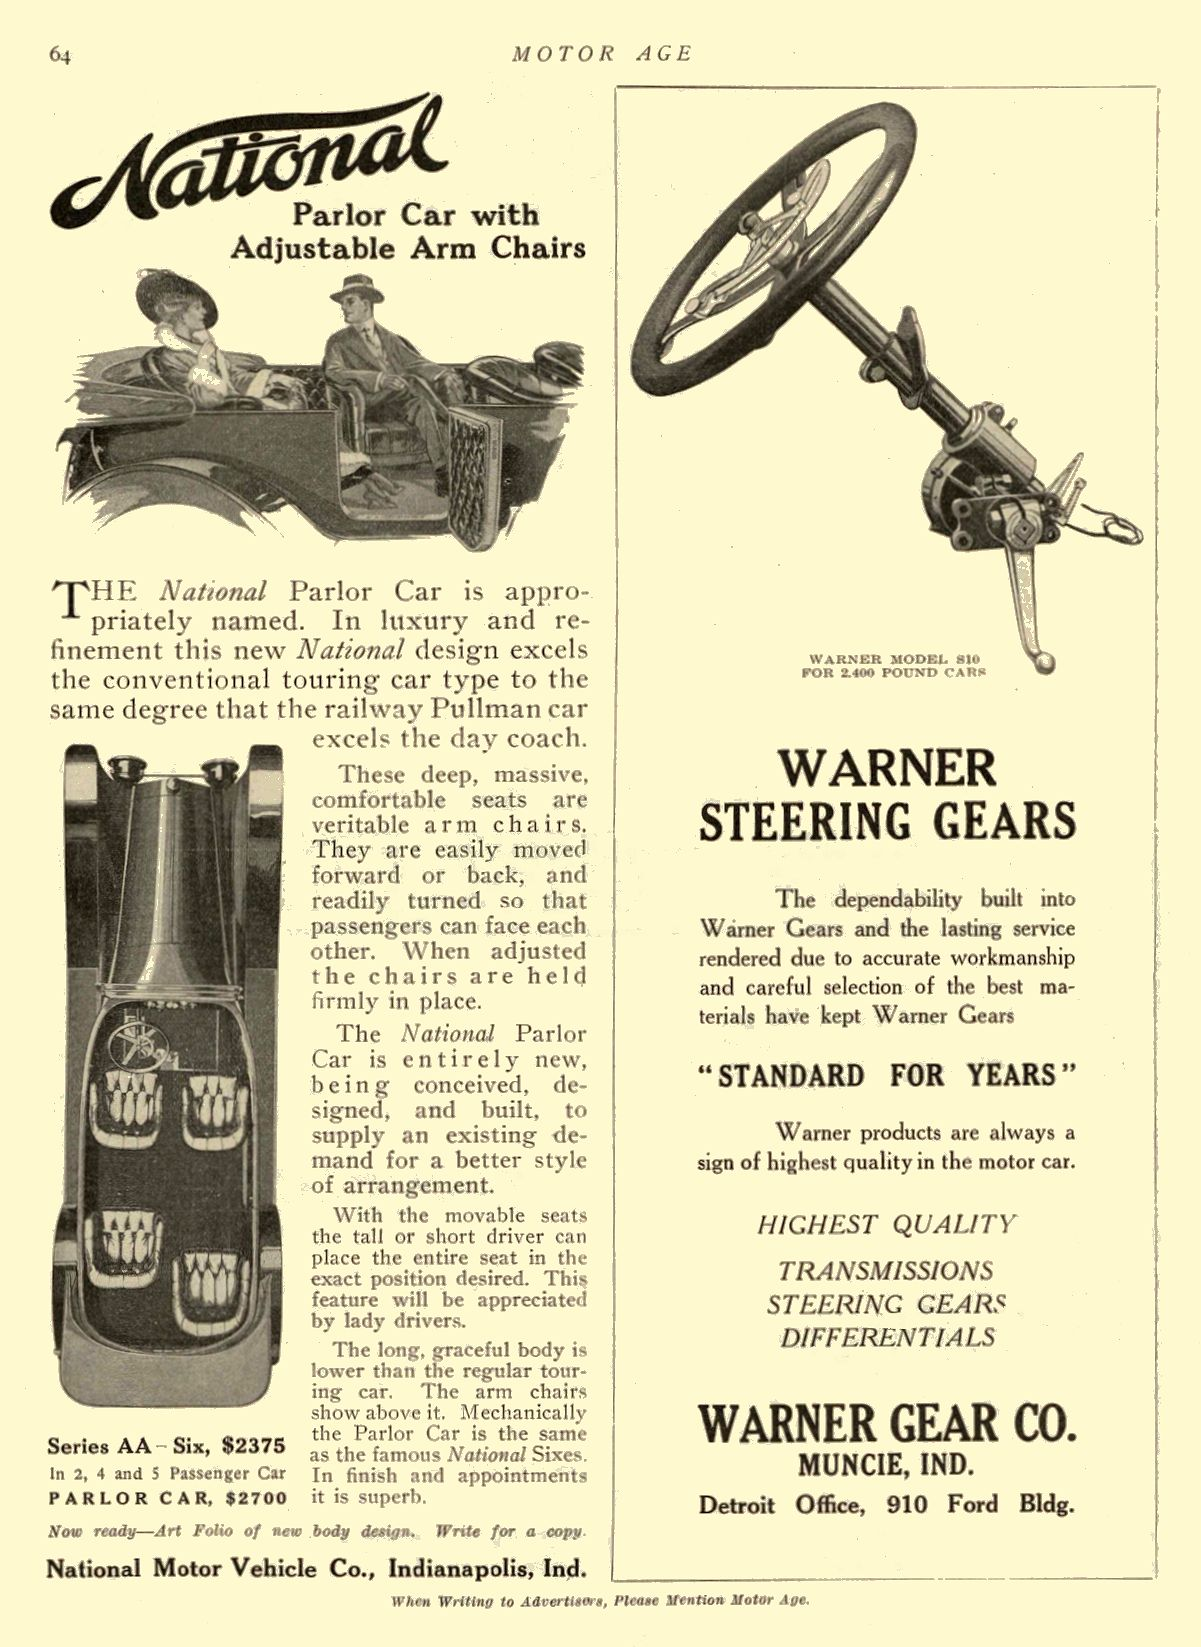 1914 12 10 NATIONAL Parlor Car with Adjustable Arm Chairs National Motor Vehicle Co. Indianapolis, IND MOTOR AGE December 10, 1914 8.5″x11.5″ page 64